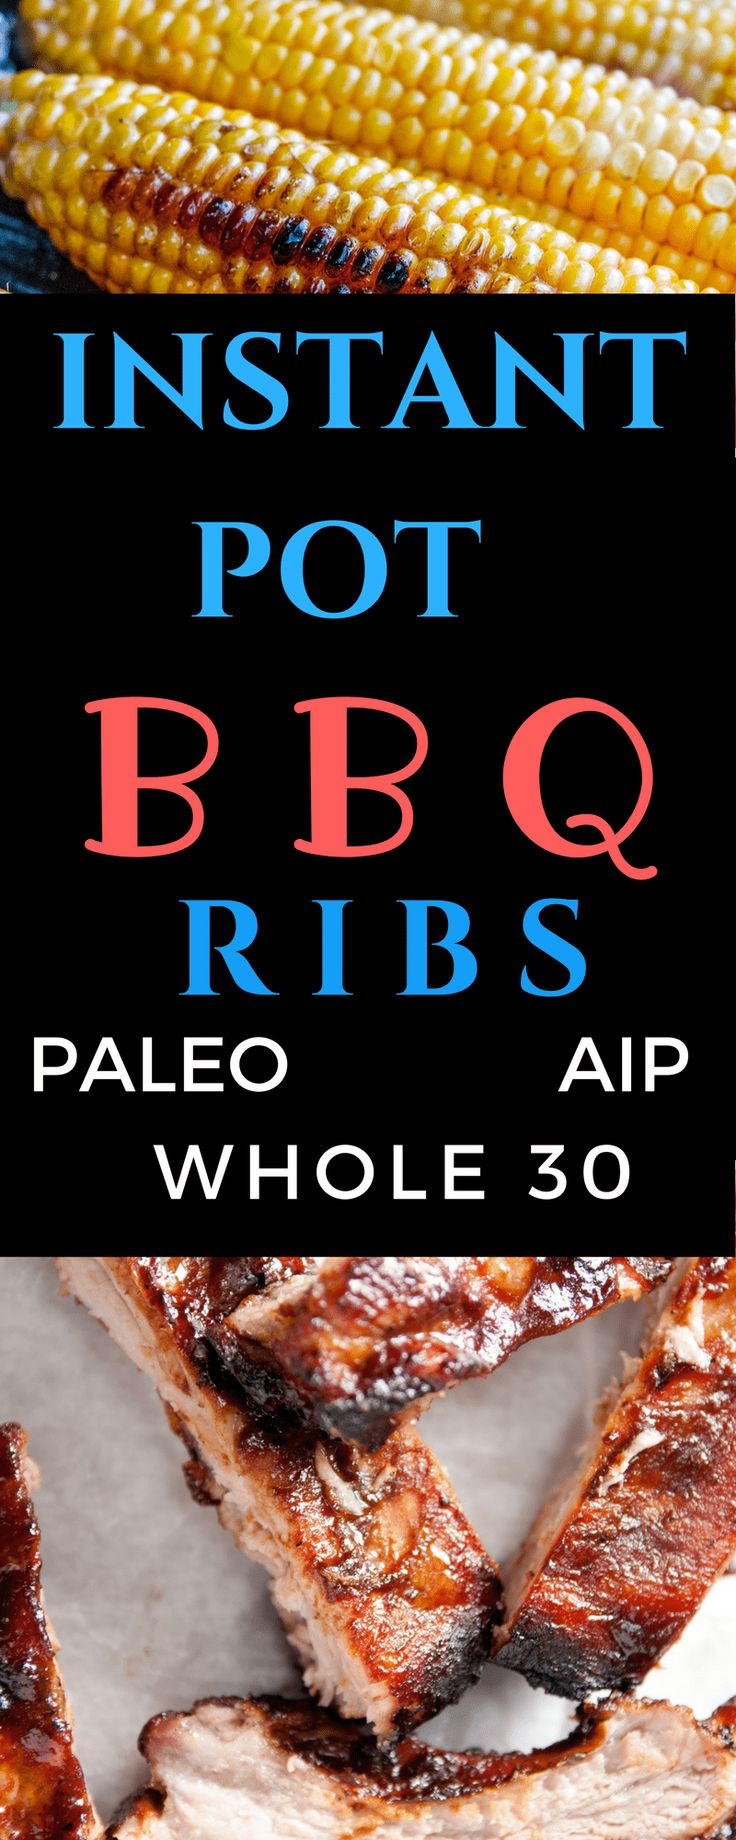 In just 20 minutes you can have delicious, fall off the bone BBQ Ribs. Instant Pot BBQ Ribs are sure to become a new favorite! #Paleo, #AIP, #Whole30